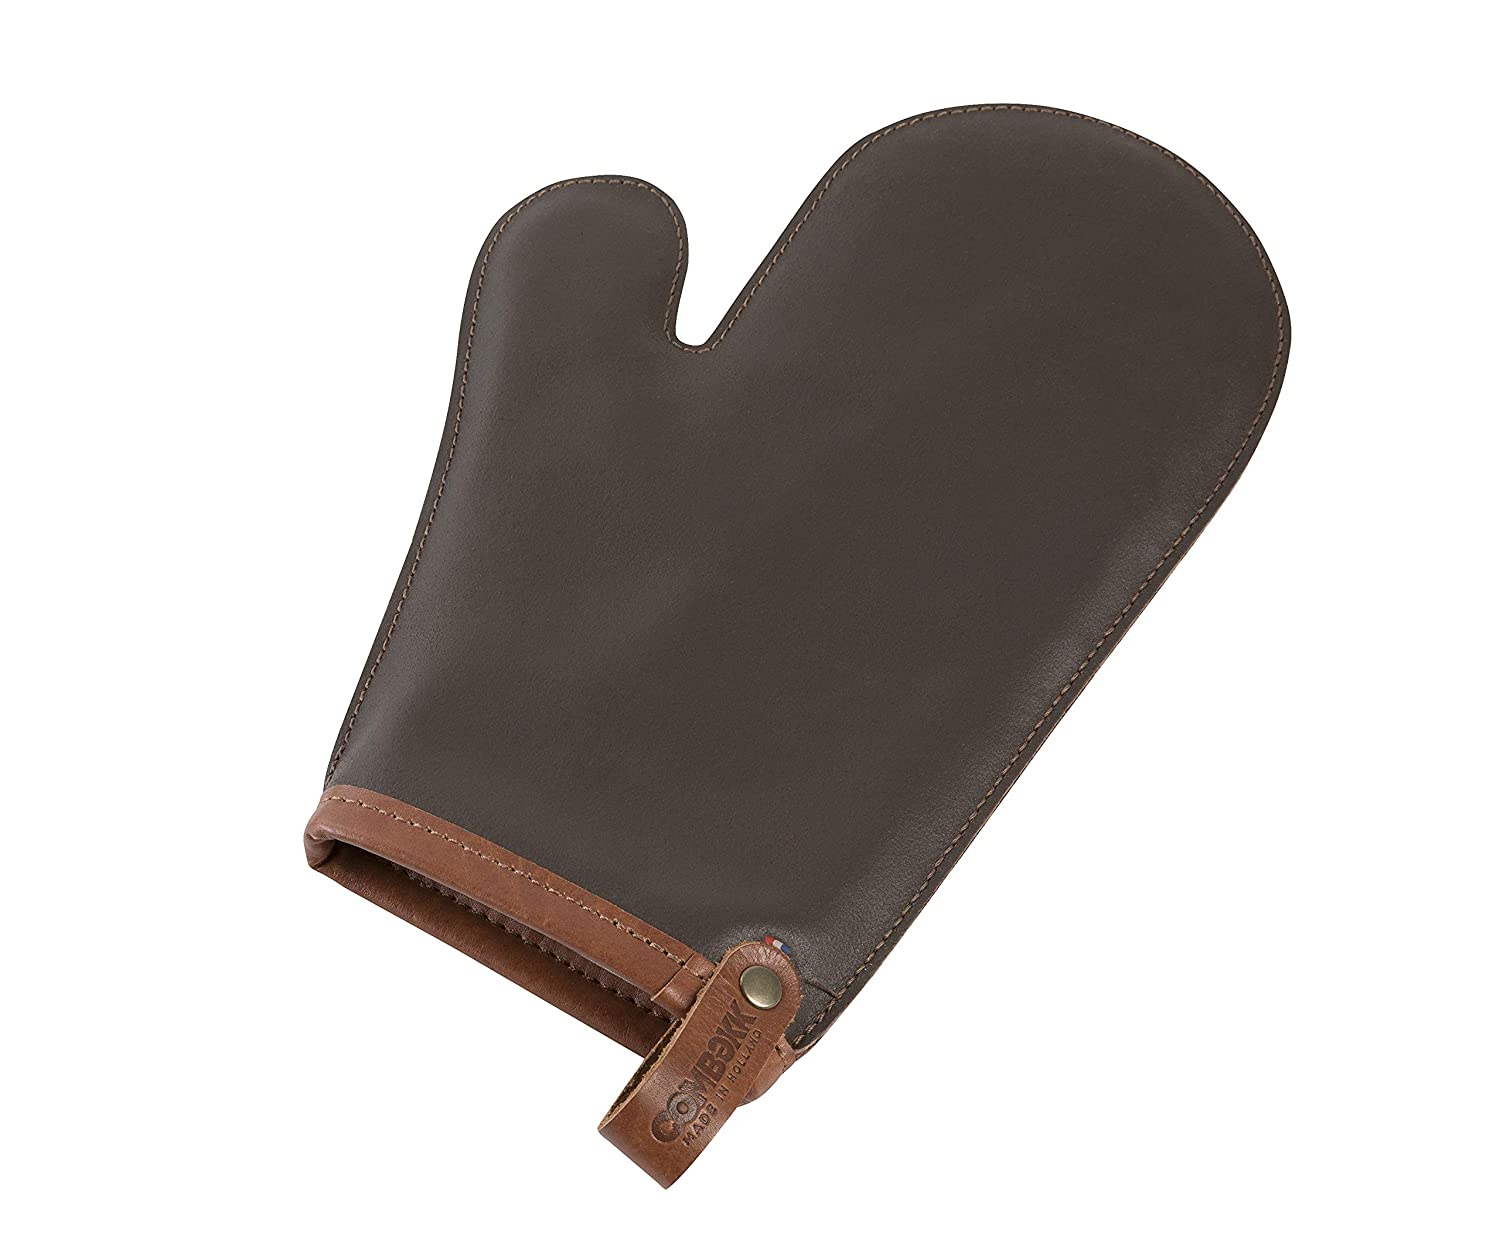 Cuisipro 75500122 Combekk Leather Dutch Oven Glove, one size, Brown